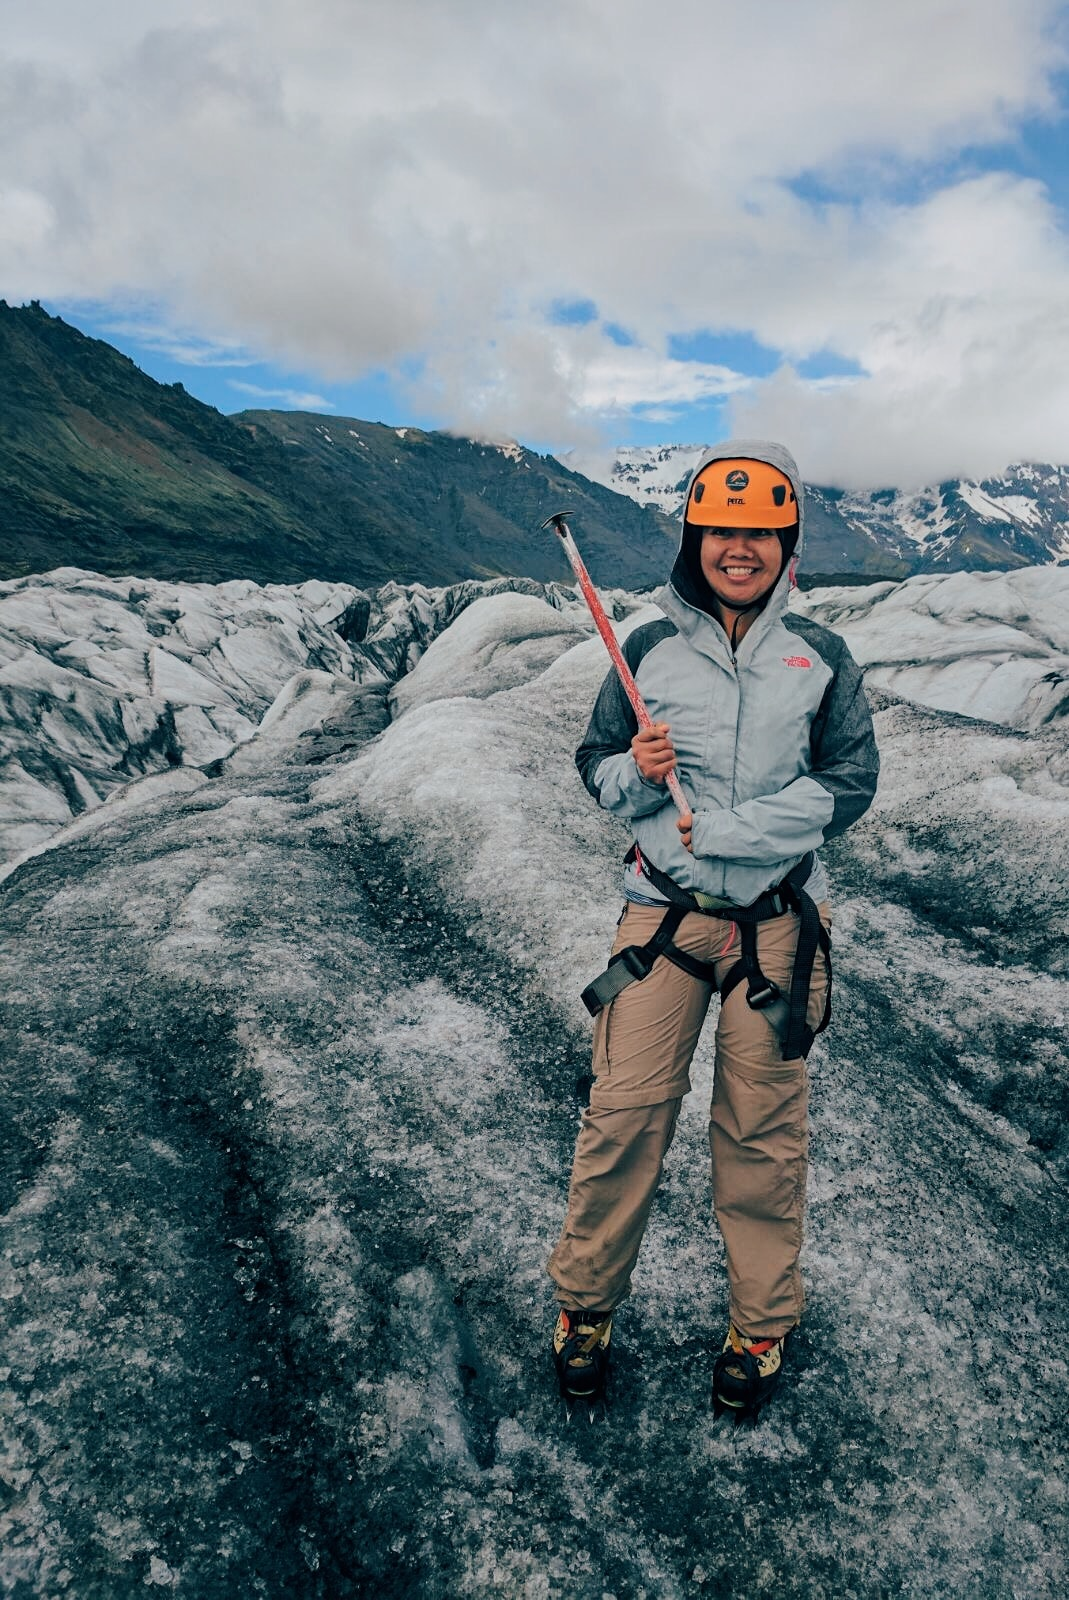 Full glacier hiking gear complete with ice ax. This is serious!